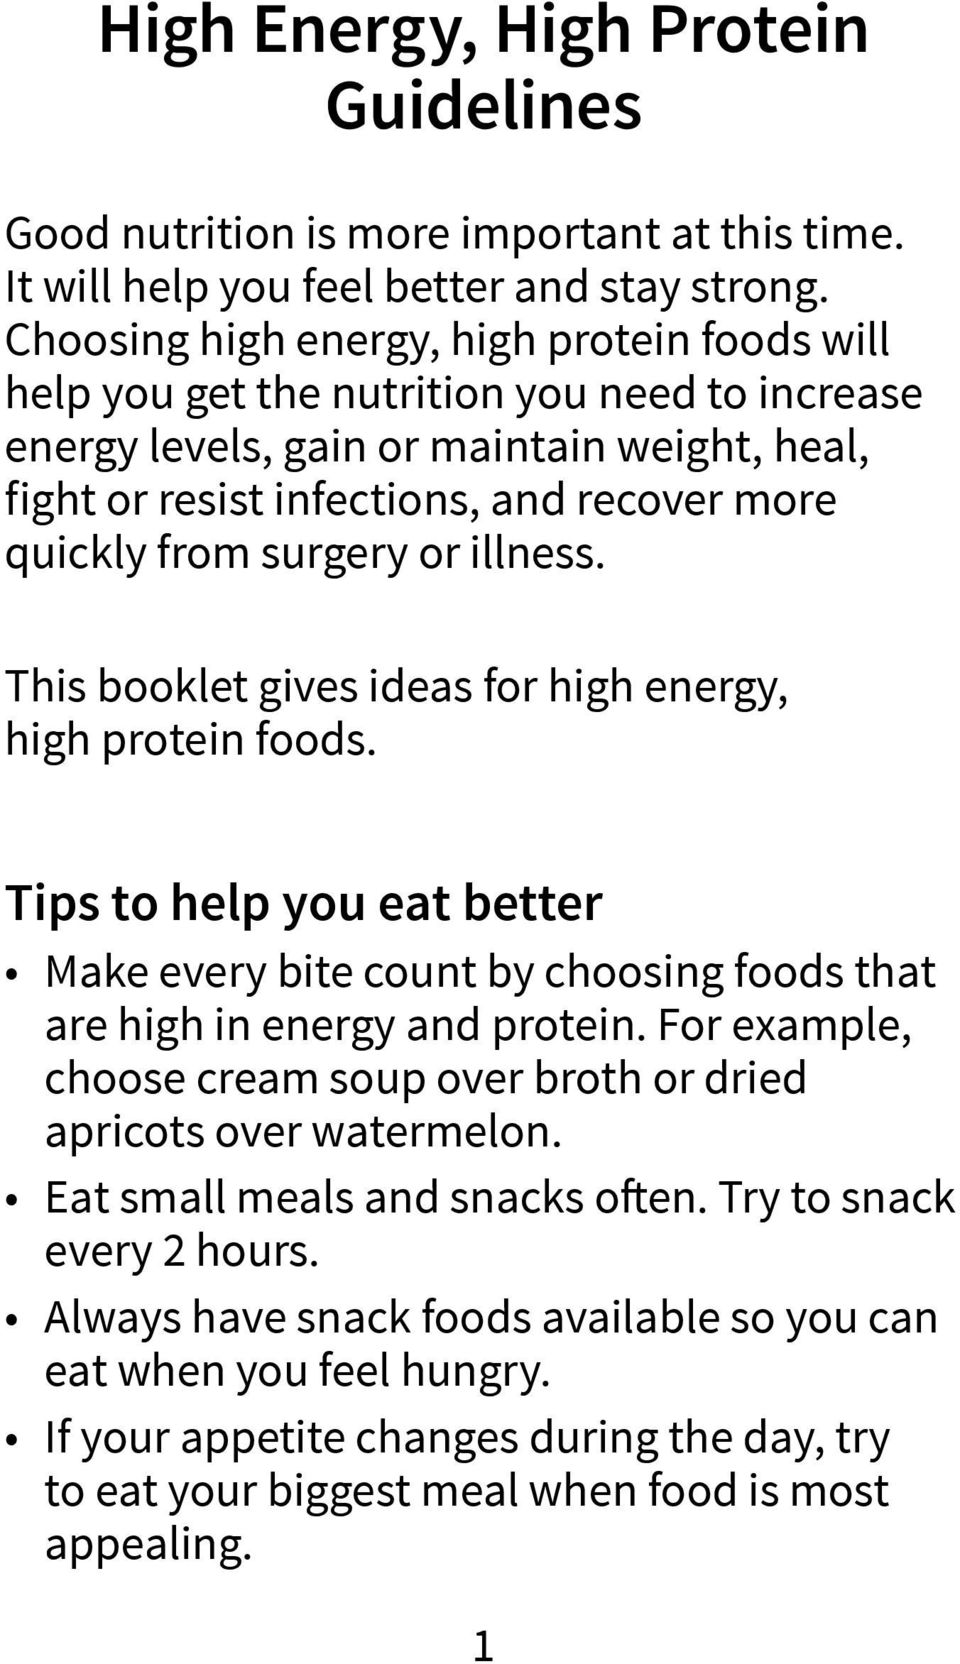 surgery or illness. This booklet gives ideas for high energy, high protein foods. Tips to help you eat better Make every bite count by choosing foods that are high in energy and protein.